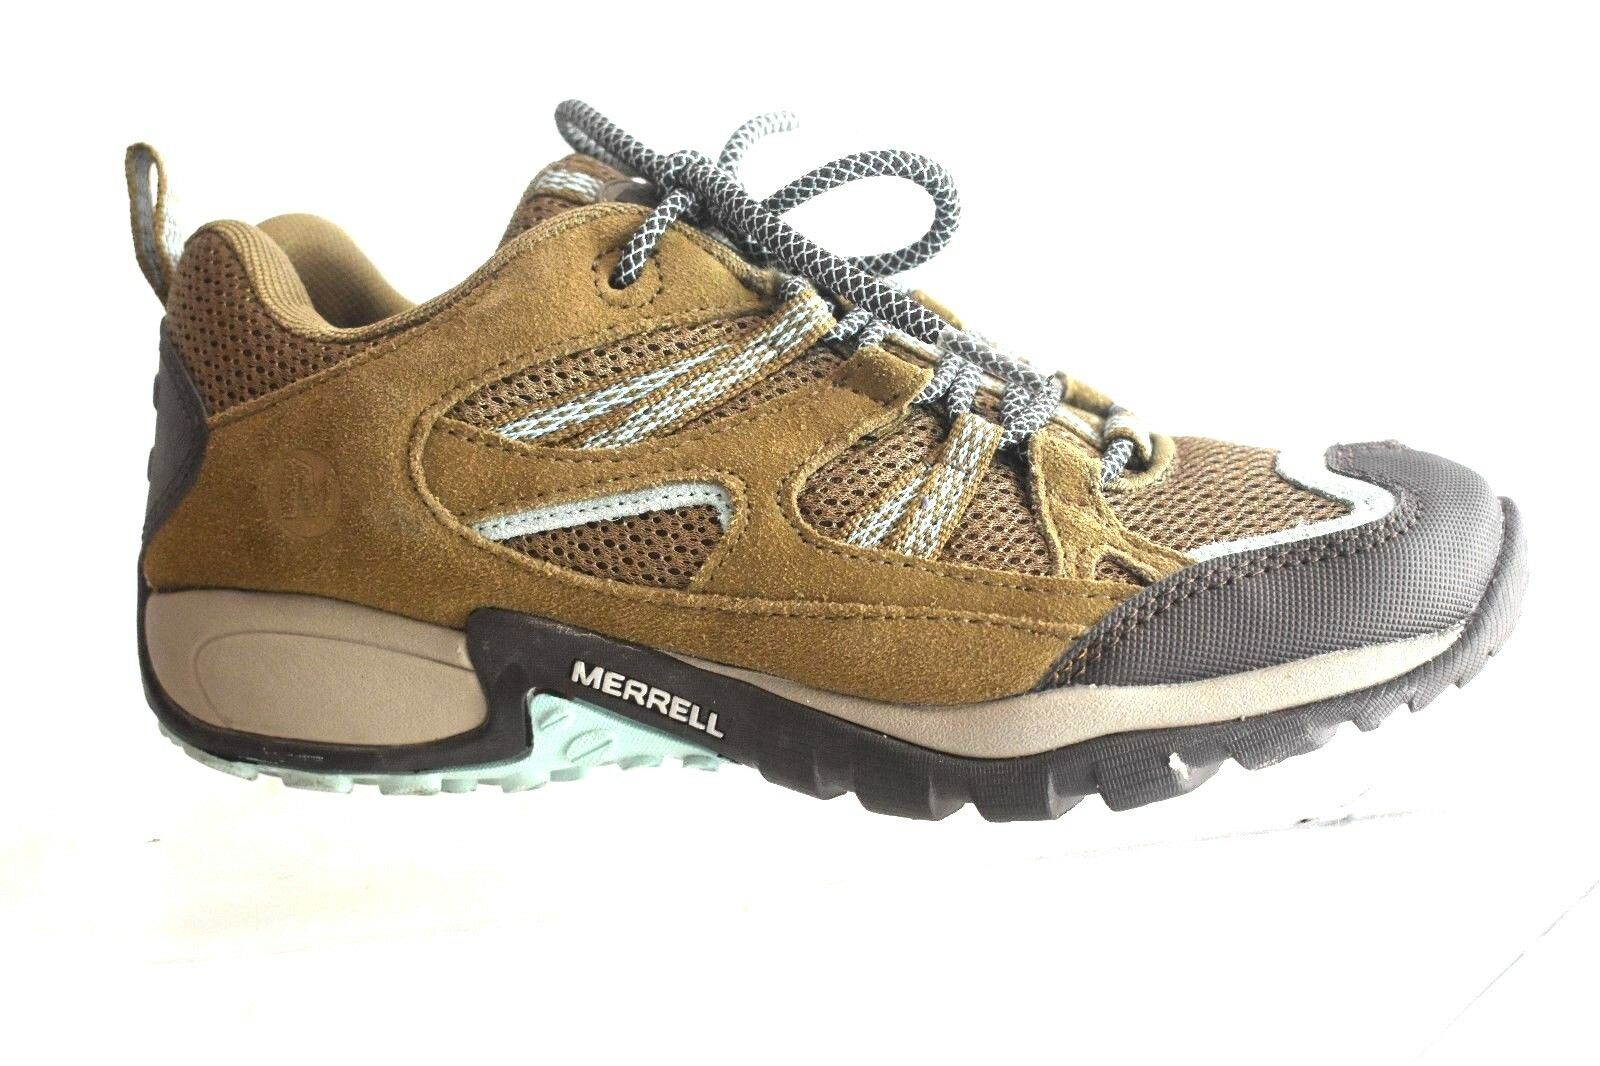 AUTHENTIC Merrell  Suede  Mesh Air Cushion  Oxford shoes SZ 7 M